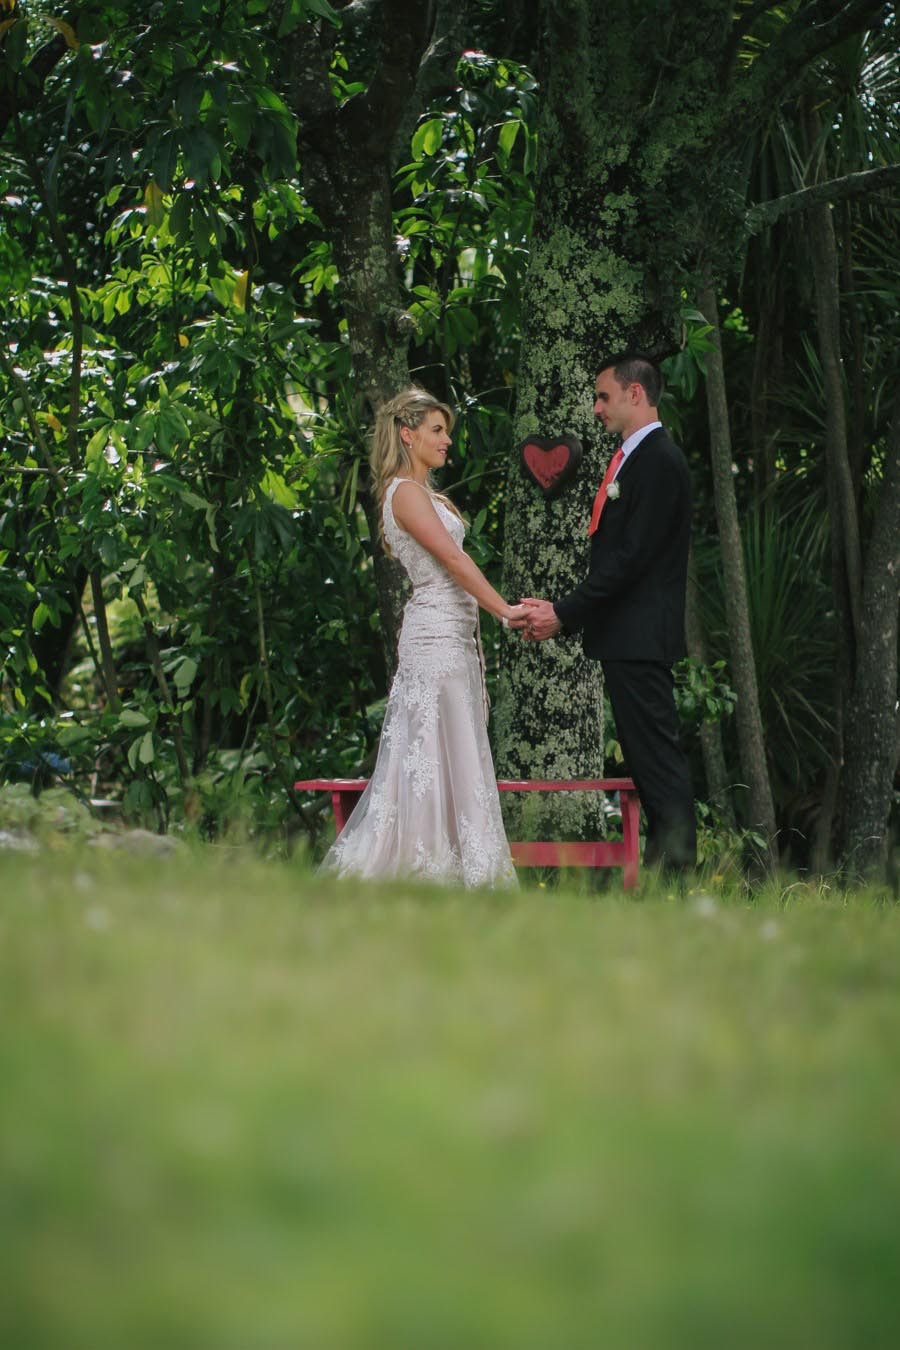 silverdale_wedding_nz_photographer-176